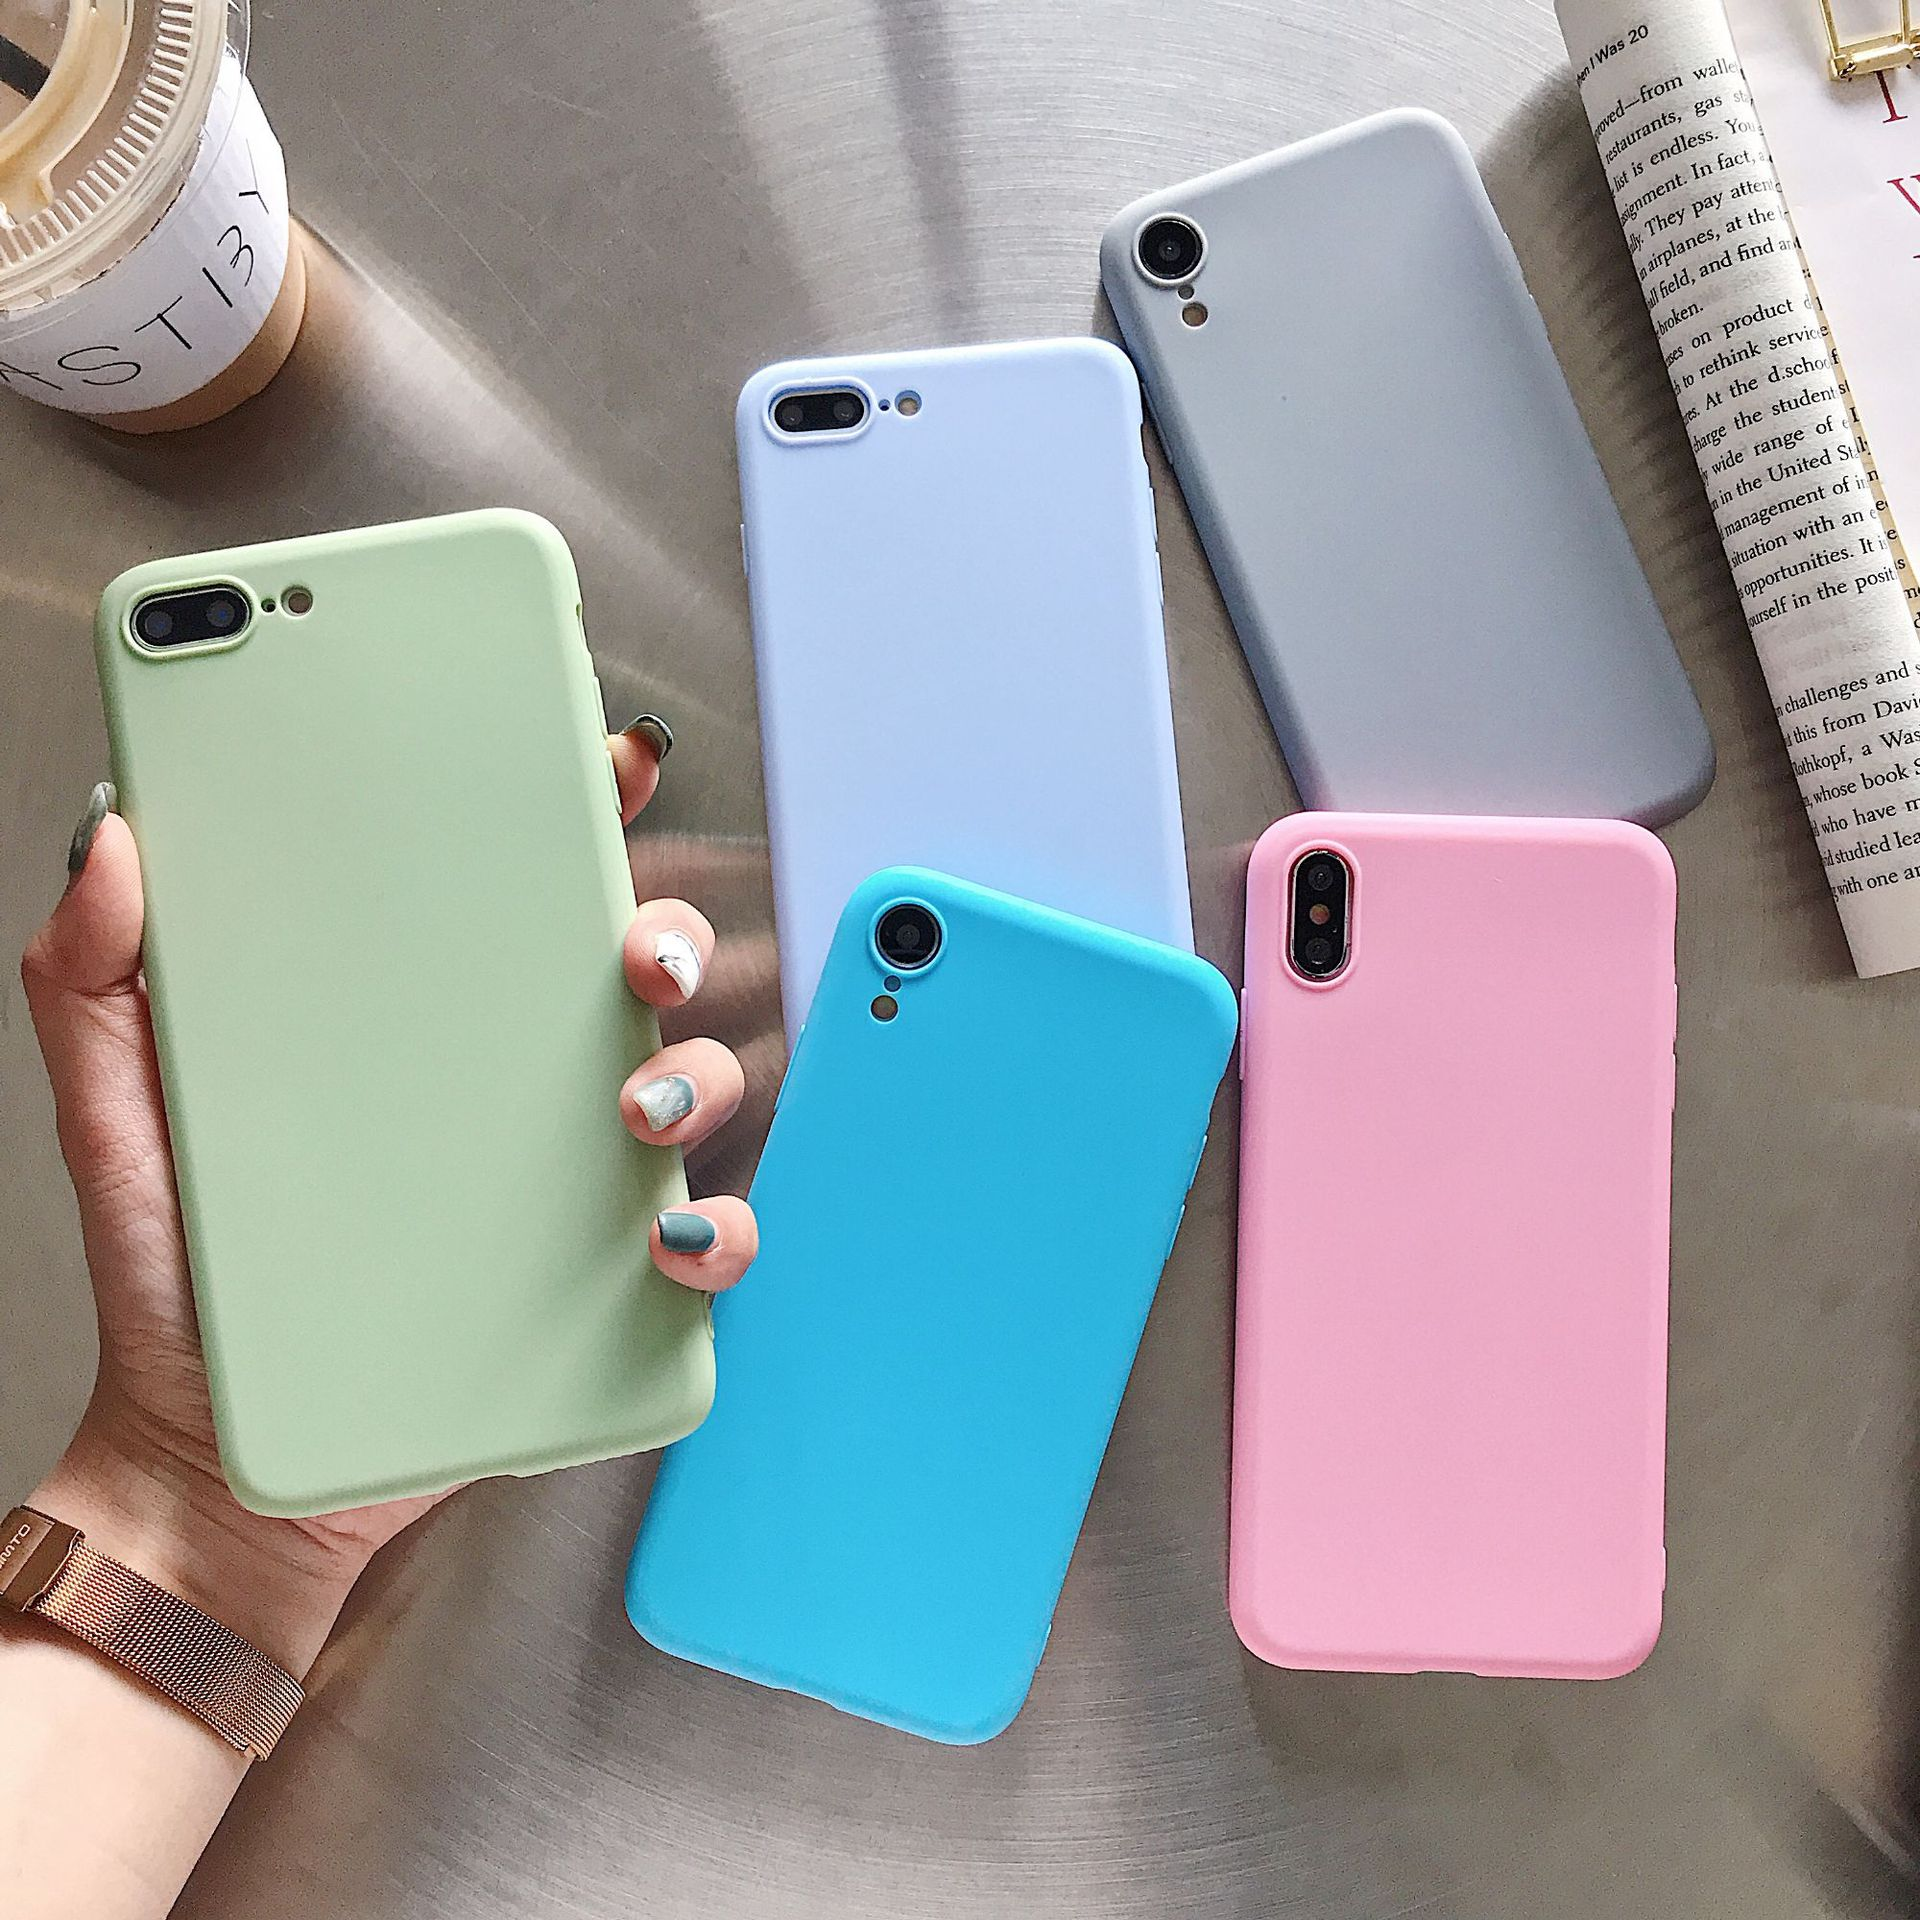 Ultra Thin Matte Candy Case For Moto G7 G6 G5 G5s G4 P30 E5 E4 C X4 Z2 Z3 Plus Play Power Note Pro Power Matte Clear TPU Cover